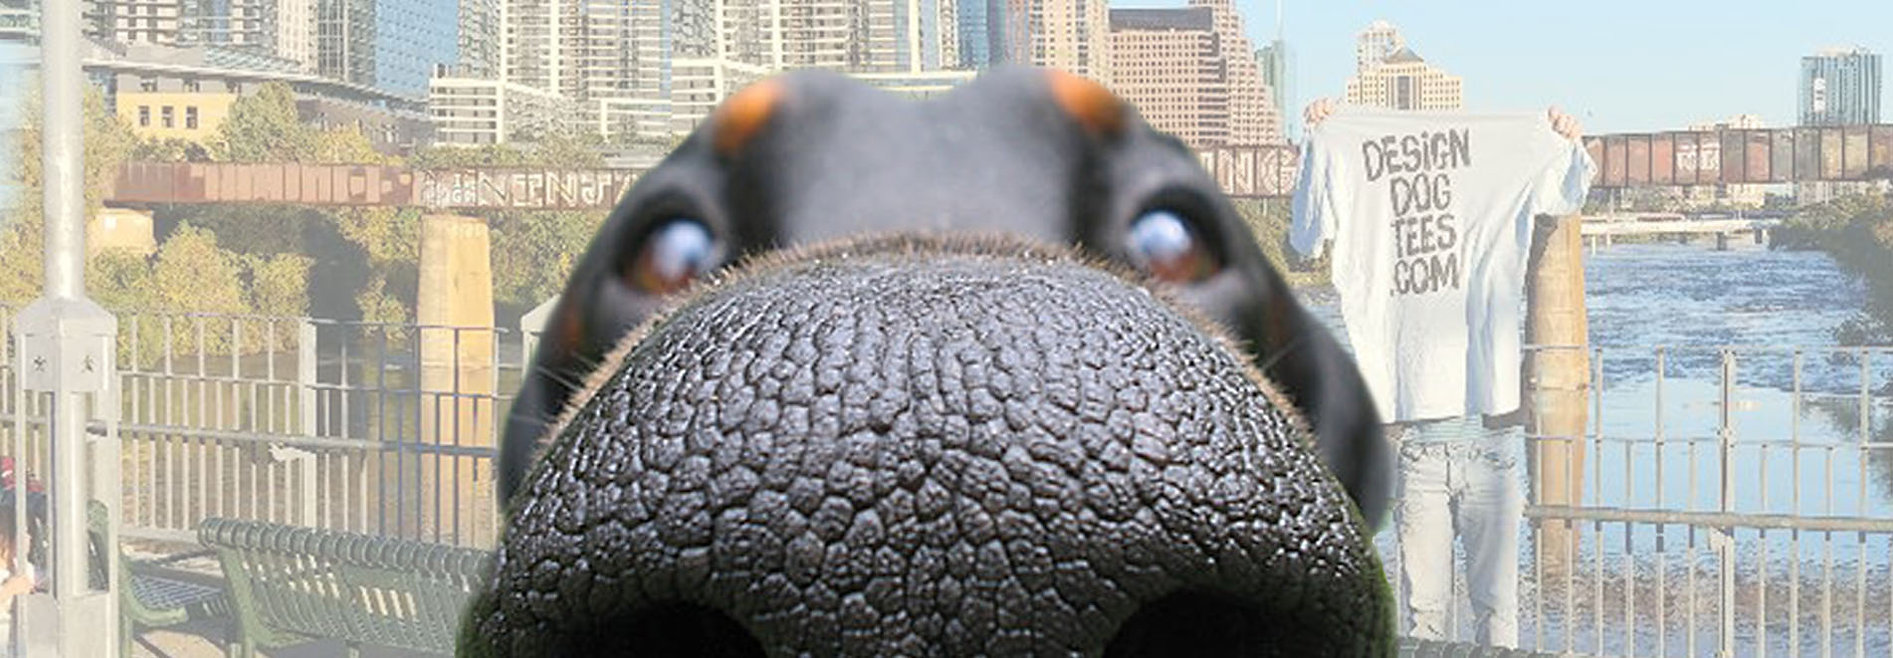 dog nose graphic design banner.jpg